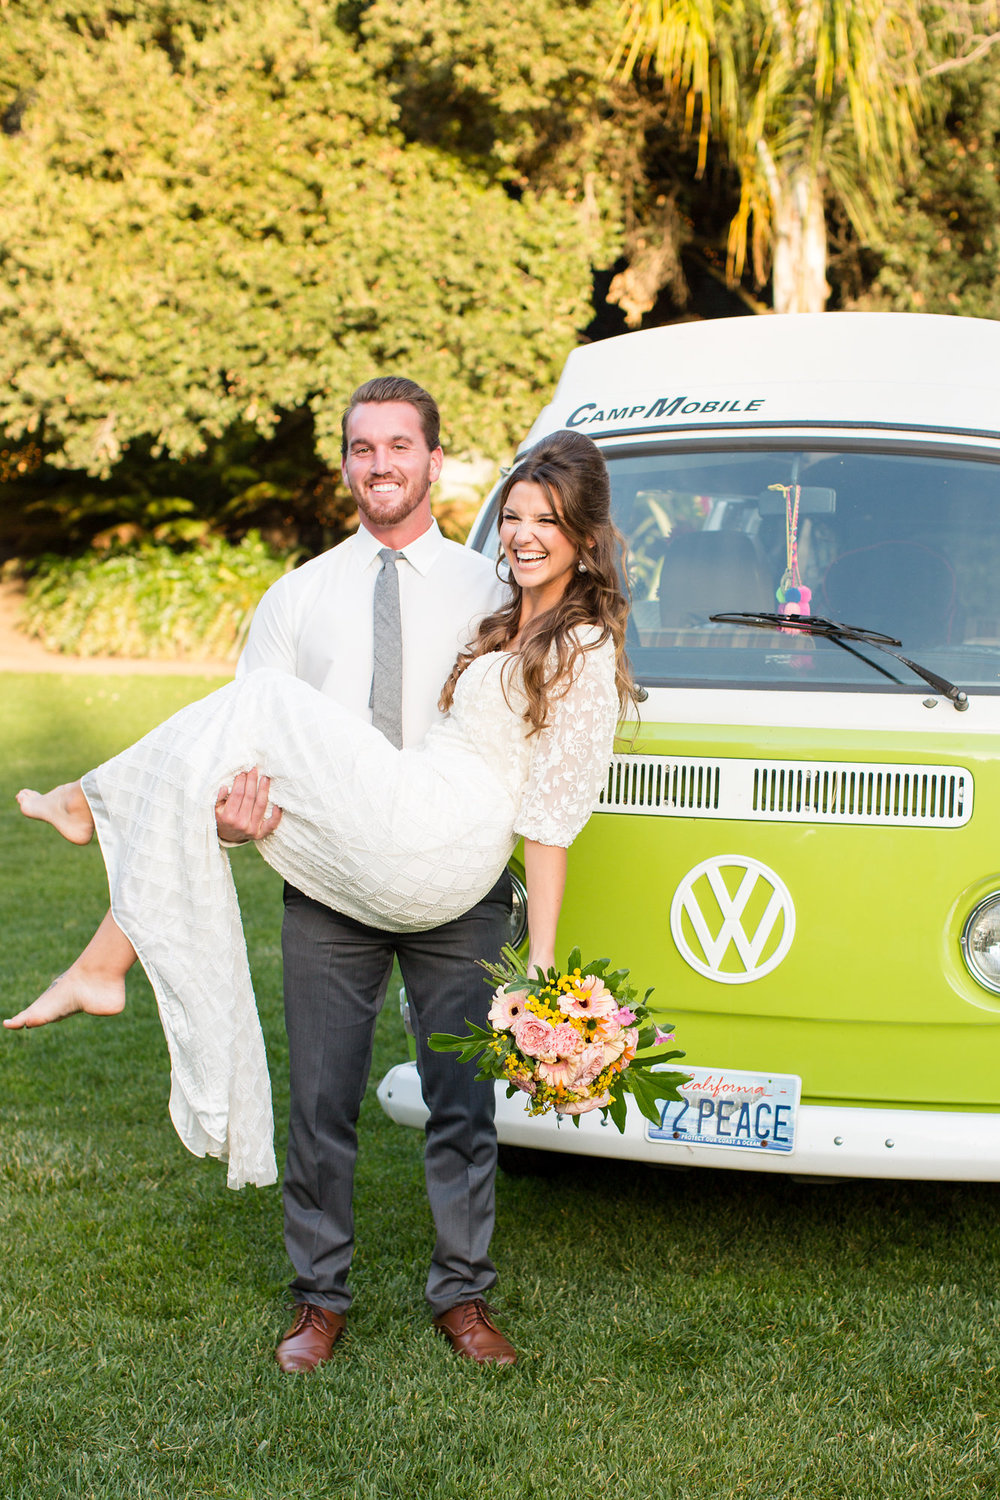 groom holding bride in front of green vw bus kim baker beauty san jose california makeup artist wedding styled photoshoot at the holly farm in carmel